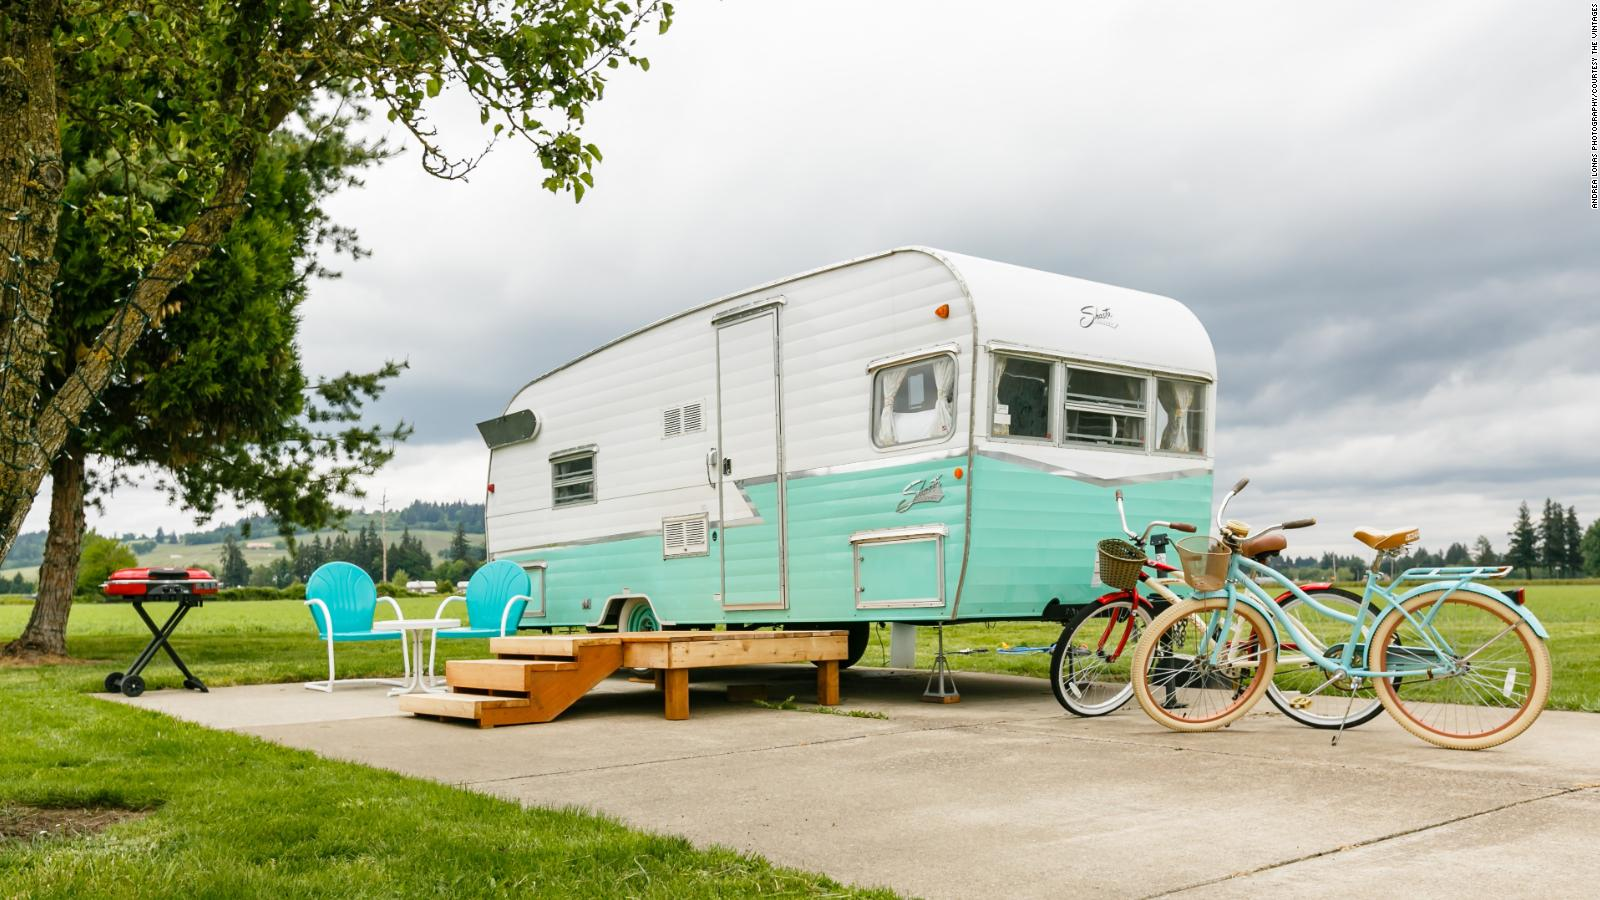 Vintage Travel Trailer Vacations Get A Pandemic Boost Cnn Travel Ohio • homes for sale. vintage travel trailer vacations get a